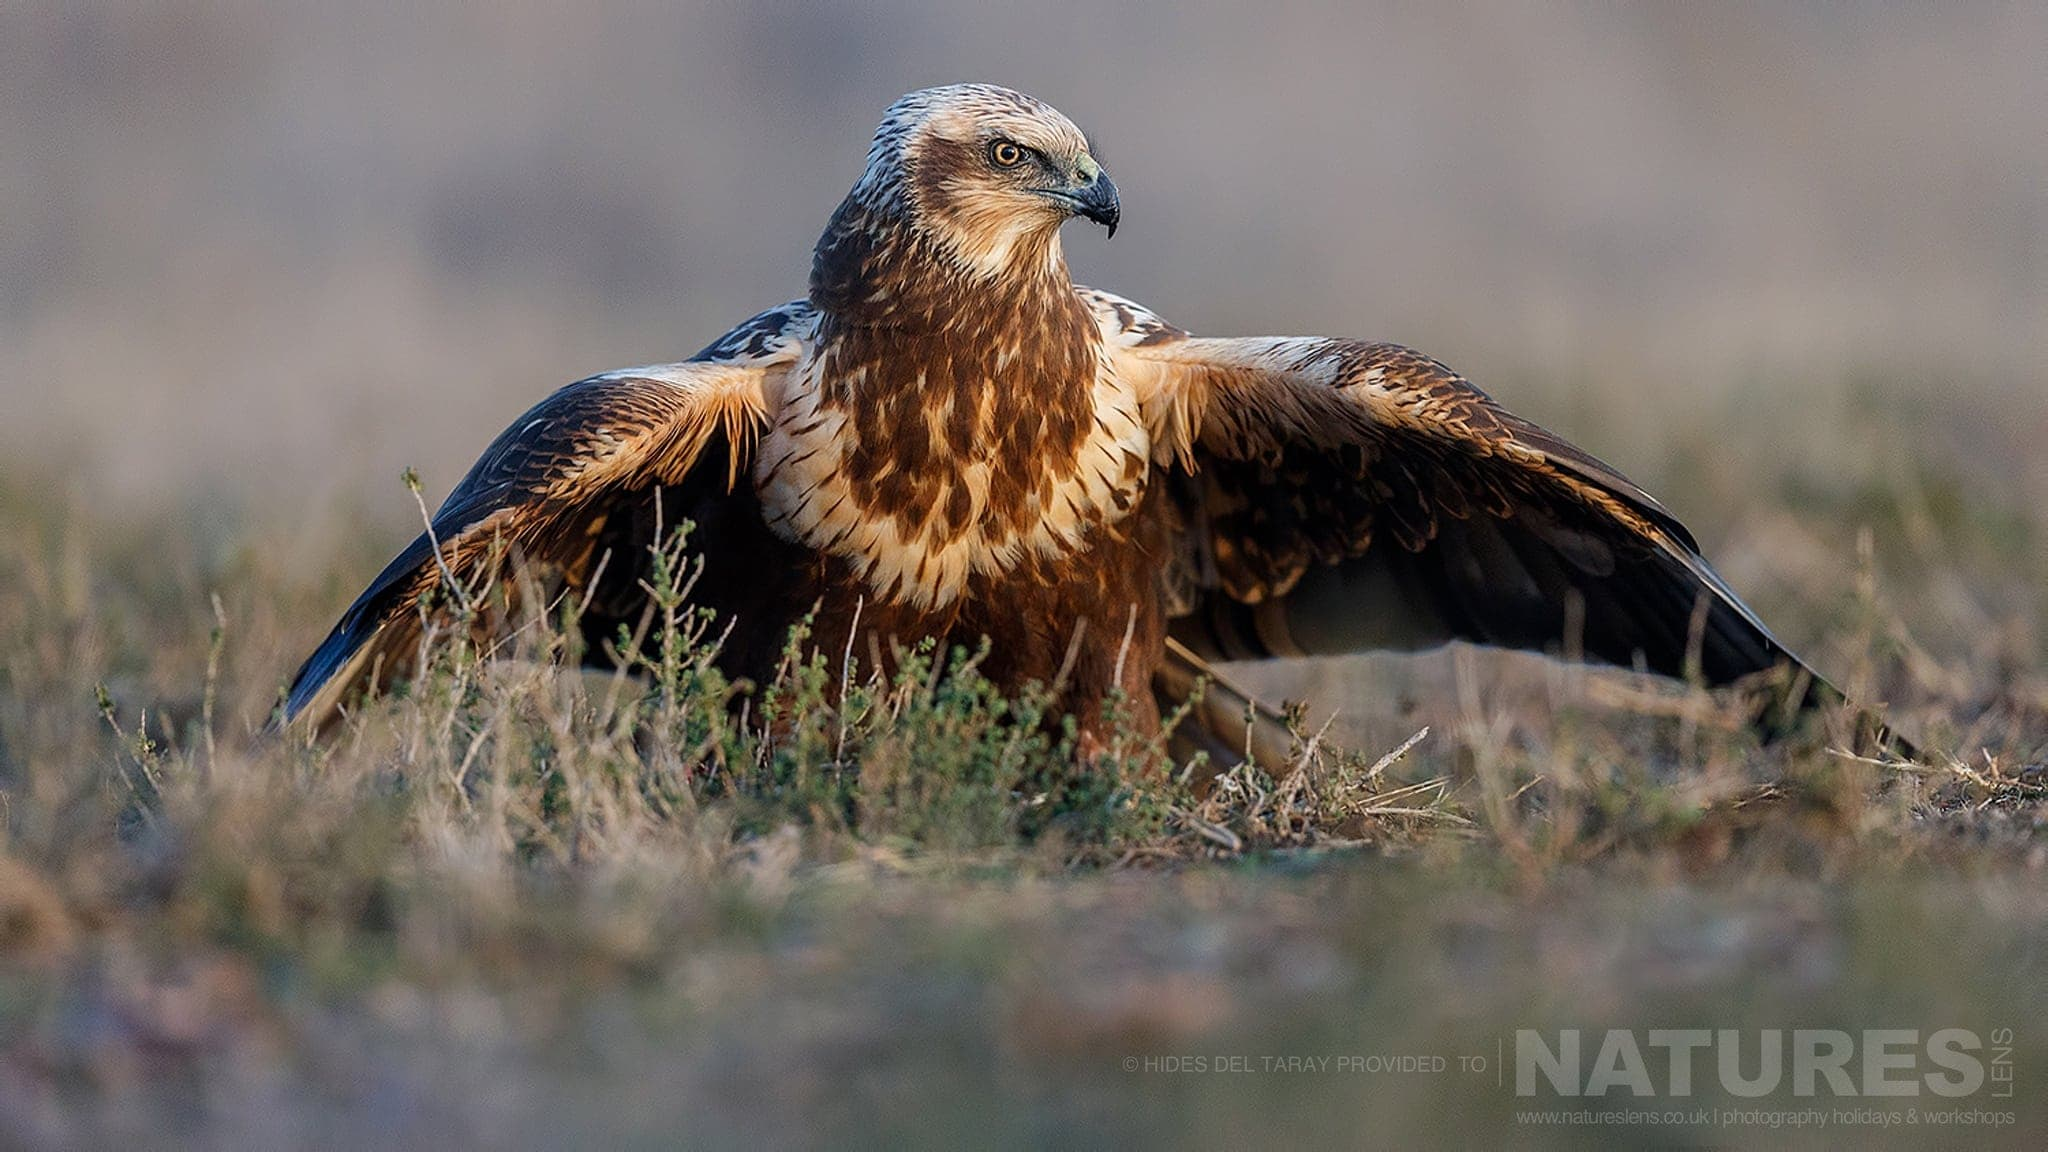 One Of The Marsh Harriers, Mantling Over Food, In Front Of One Of The Hides   Photographed On The Estate Used For The NaturesLens Spanish Birds Of Toledo Photography Holiday